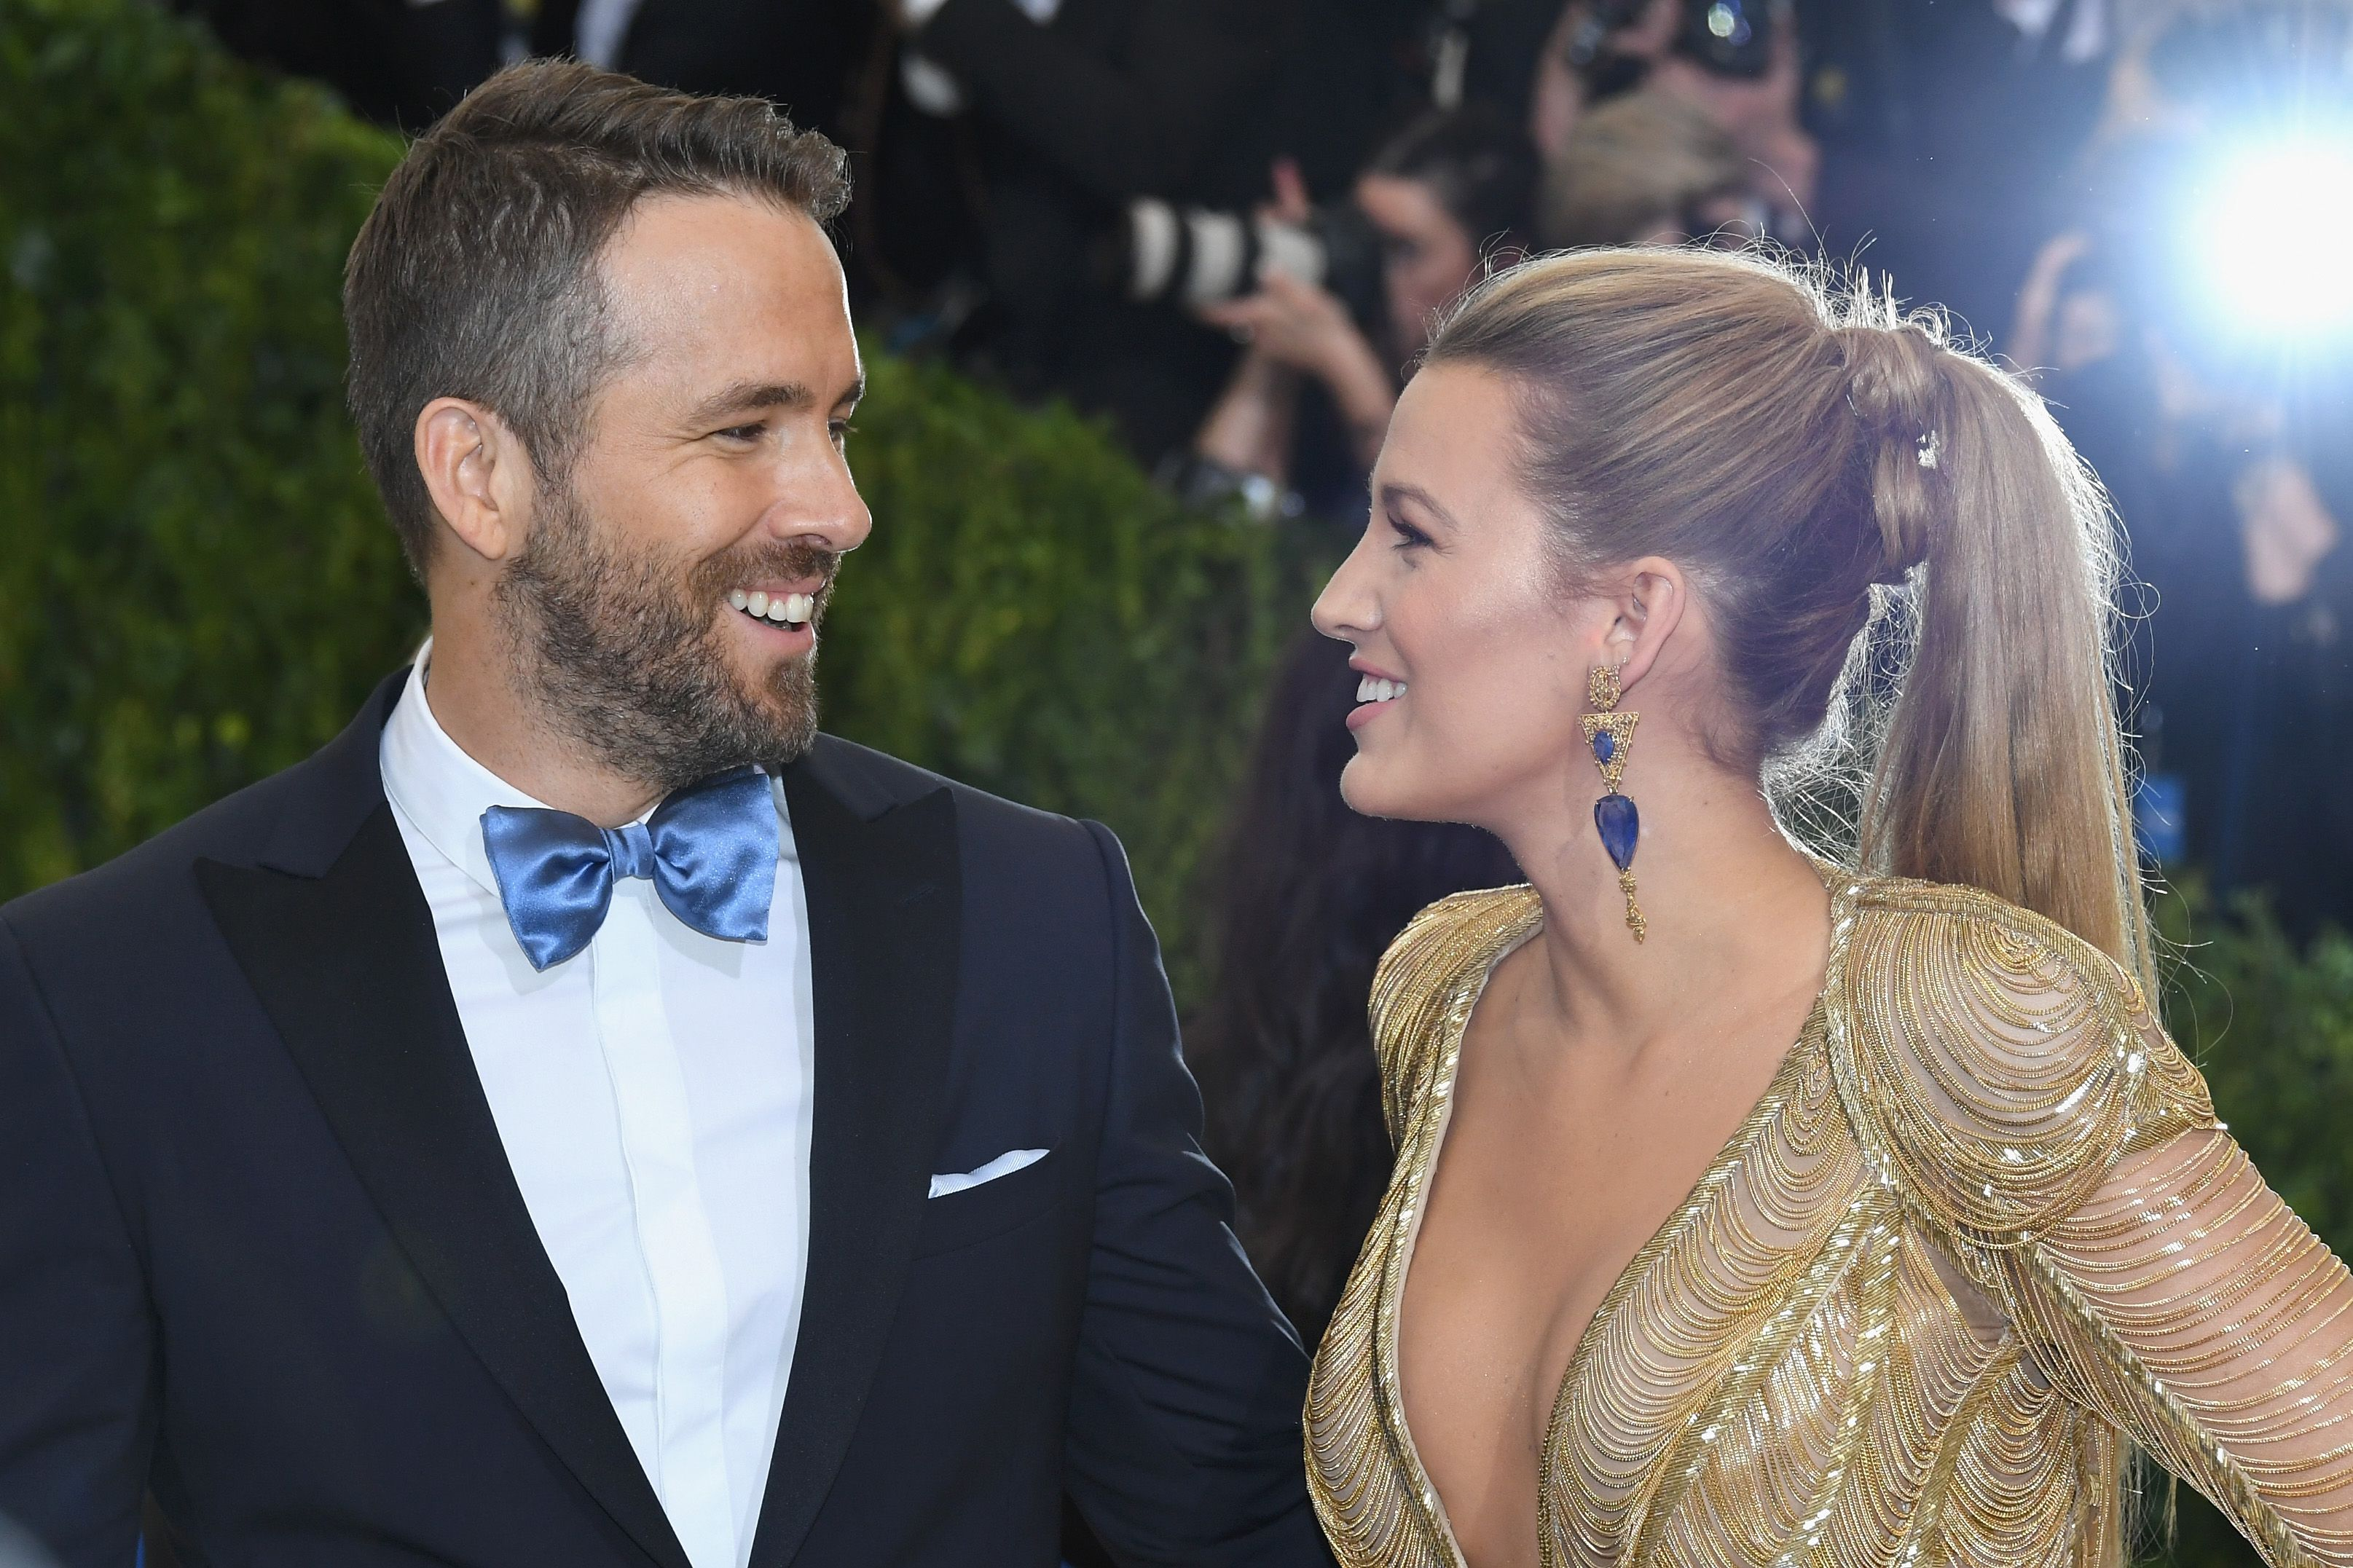 ryan reynolds reacts to blake lively savagely unfollowing him on